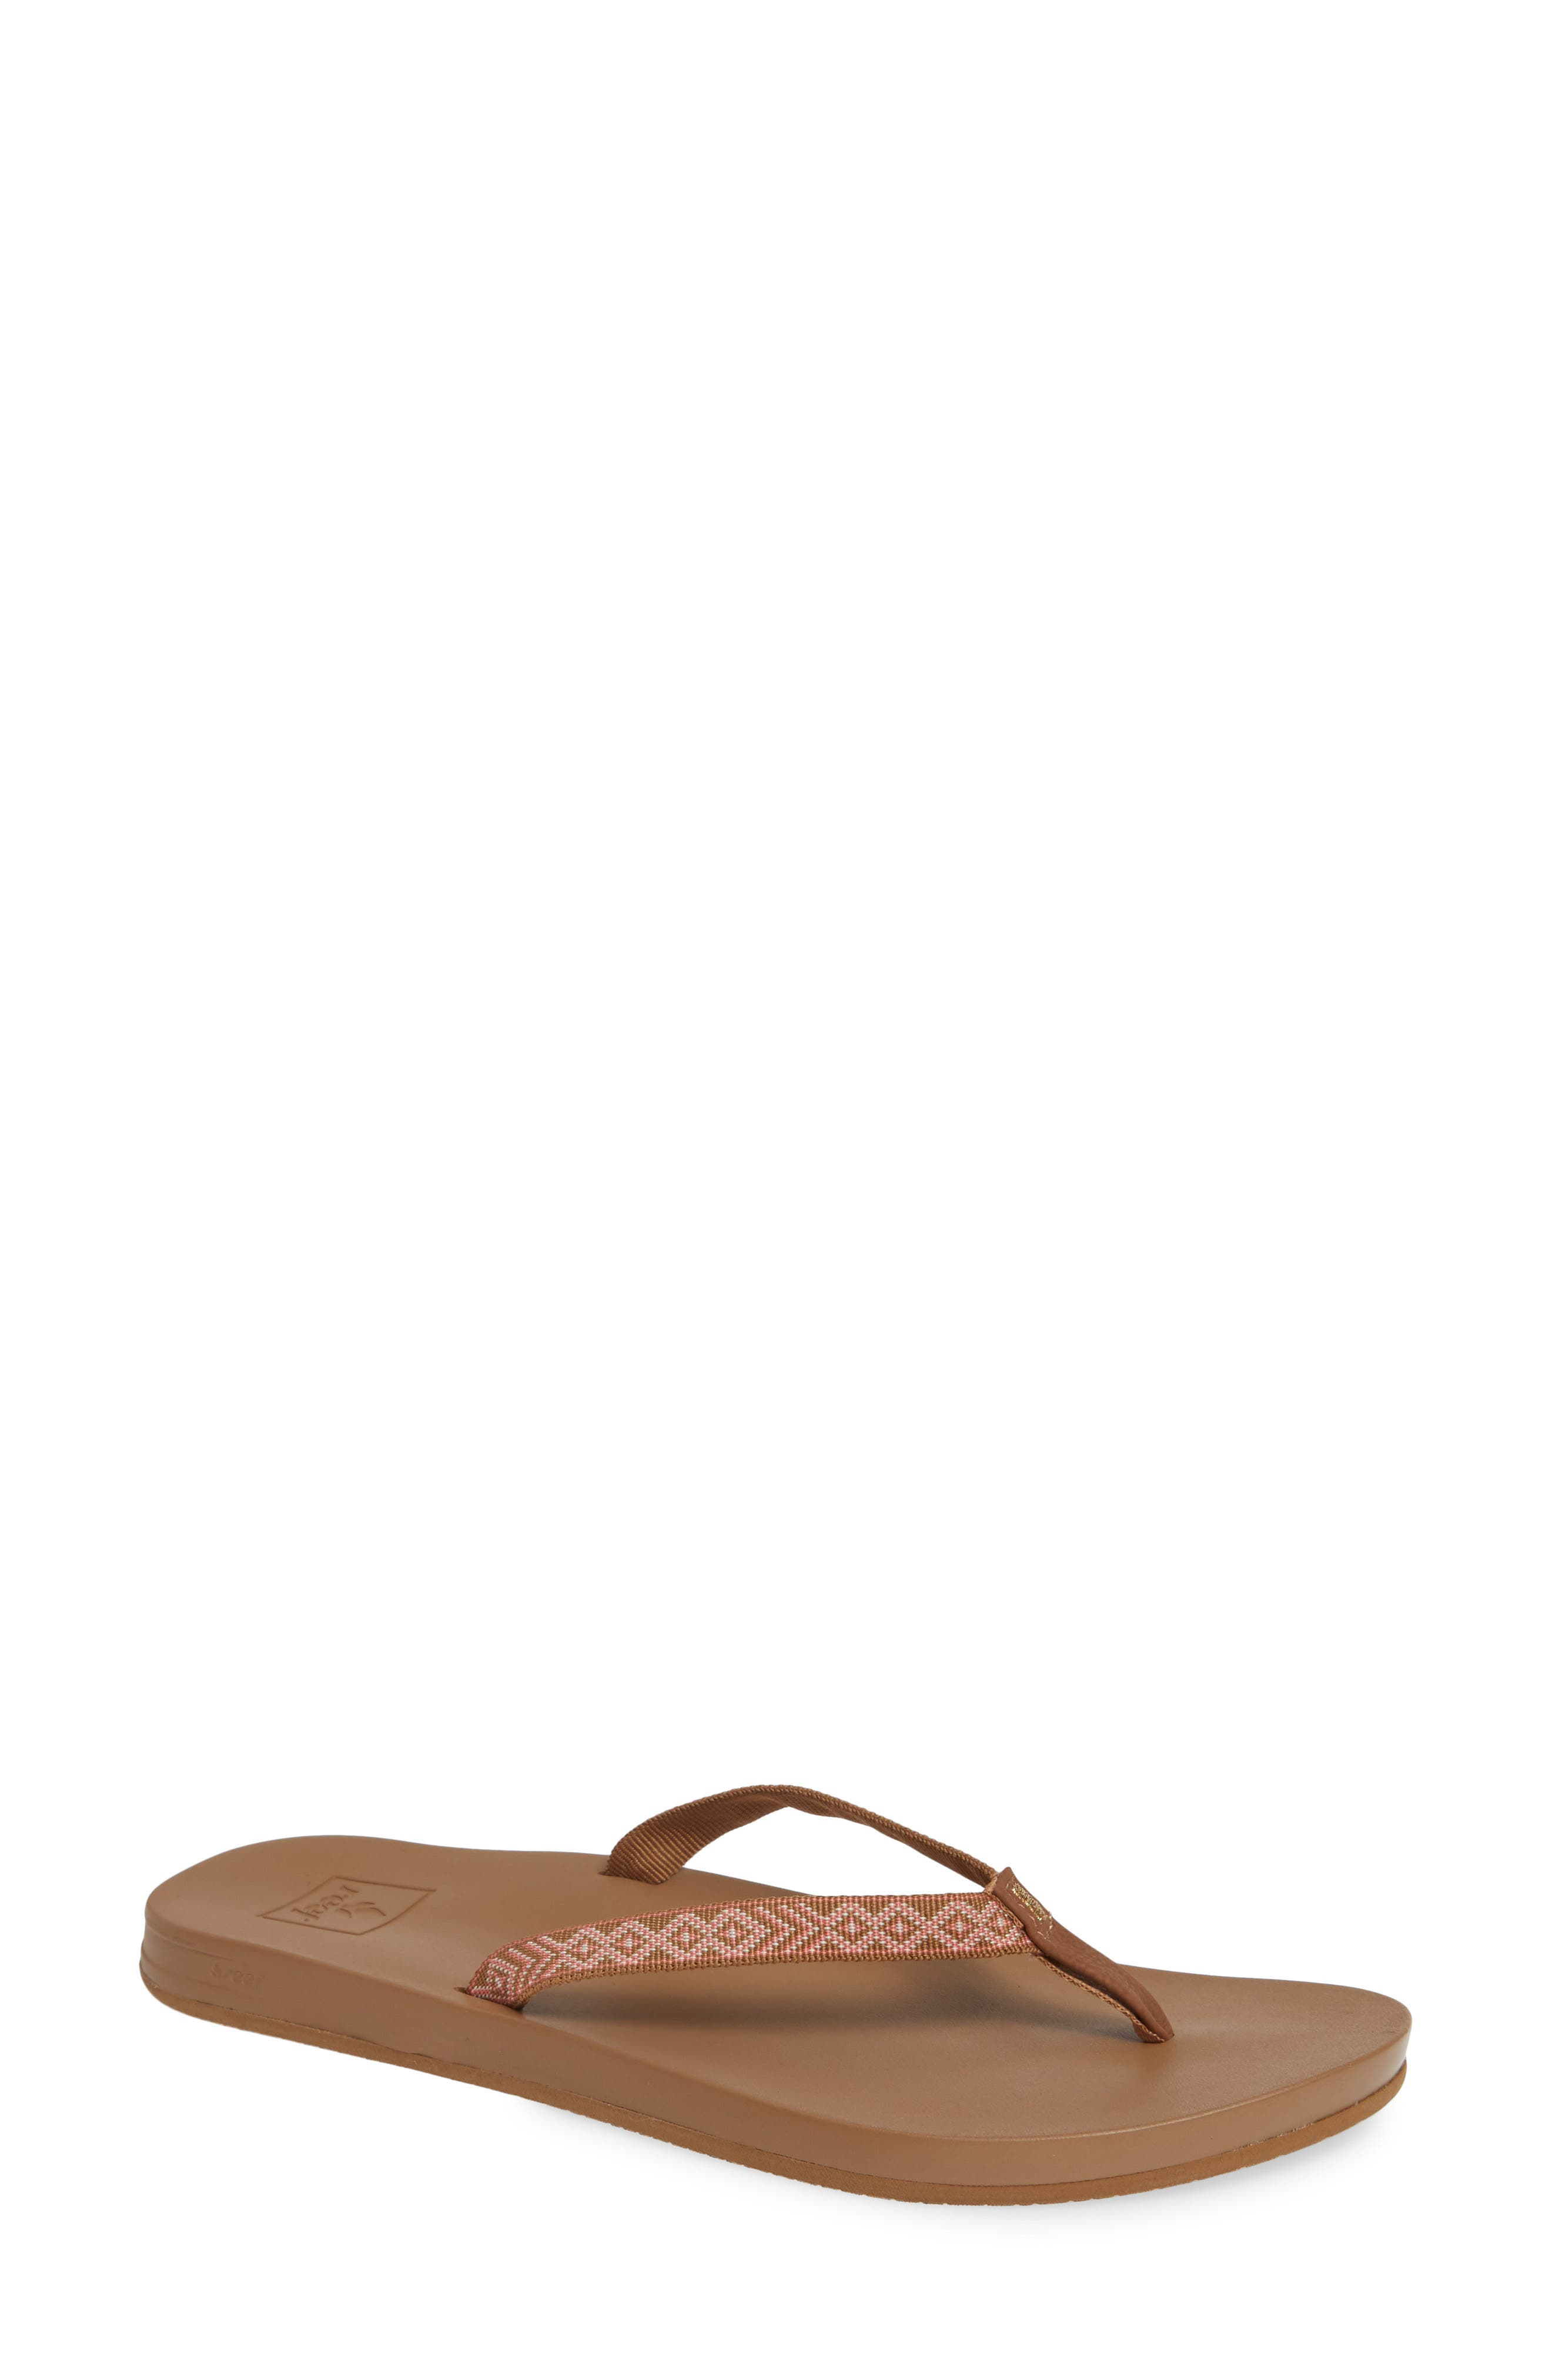 REEF, Cushion Bounce Flip Flop, Main thumbnail 1, color, NATURAL